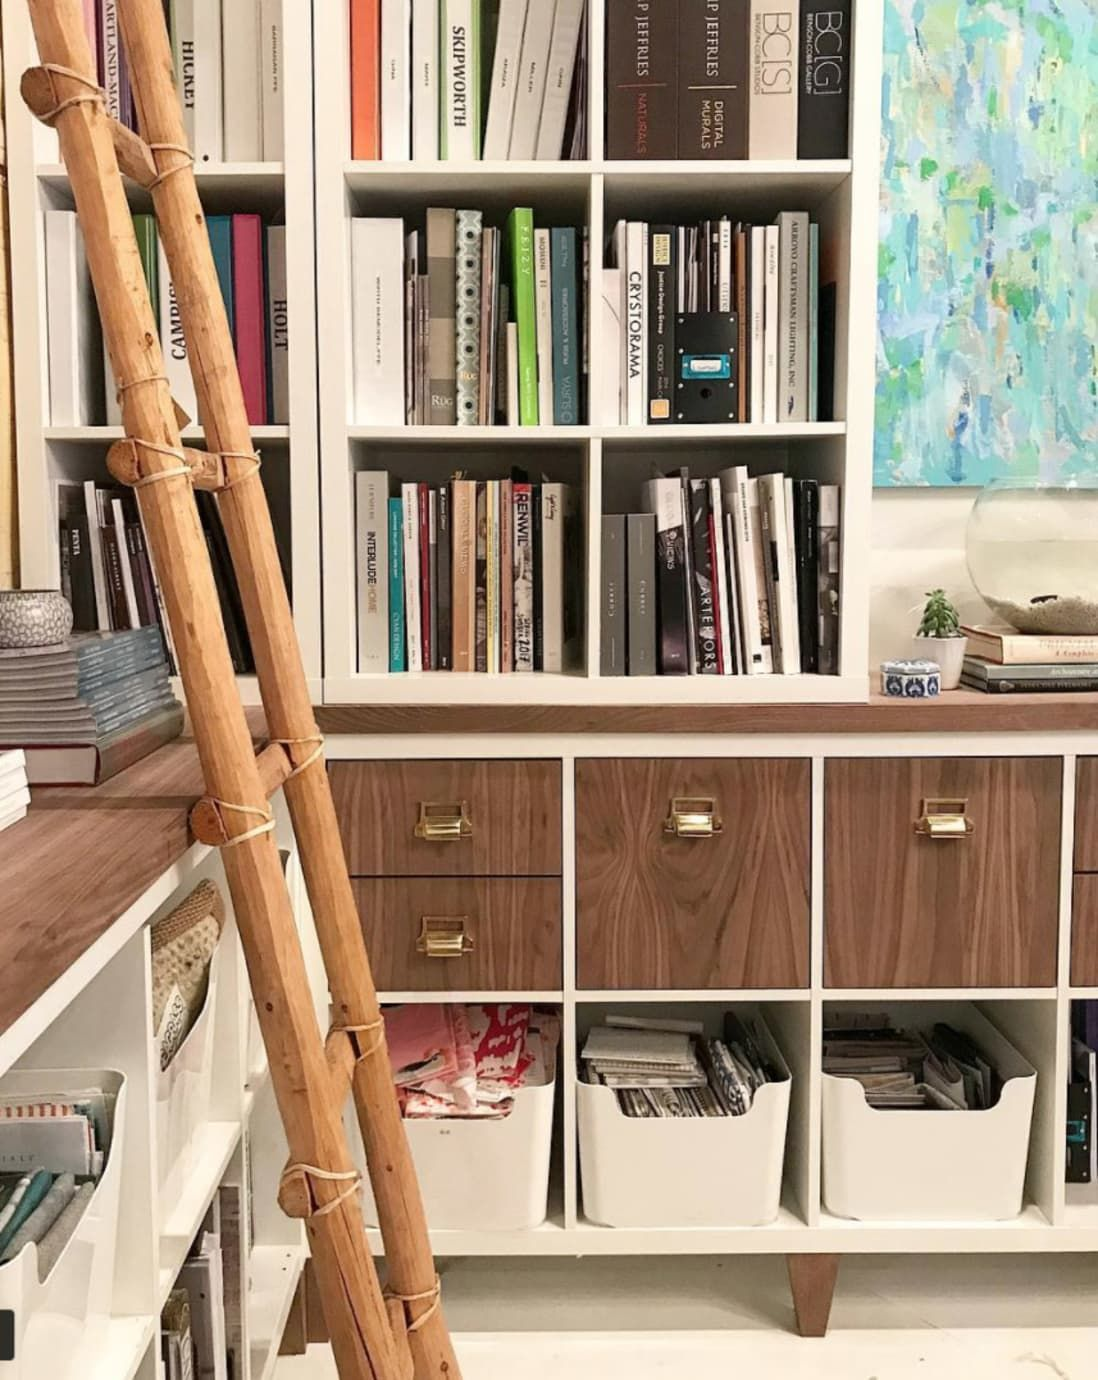 Little Magic Tricks To Make Your Ikea Look Less Like Laminate In 2020 Furniture Hacks Ikea Bookcase Diy Furniture Hacks